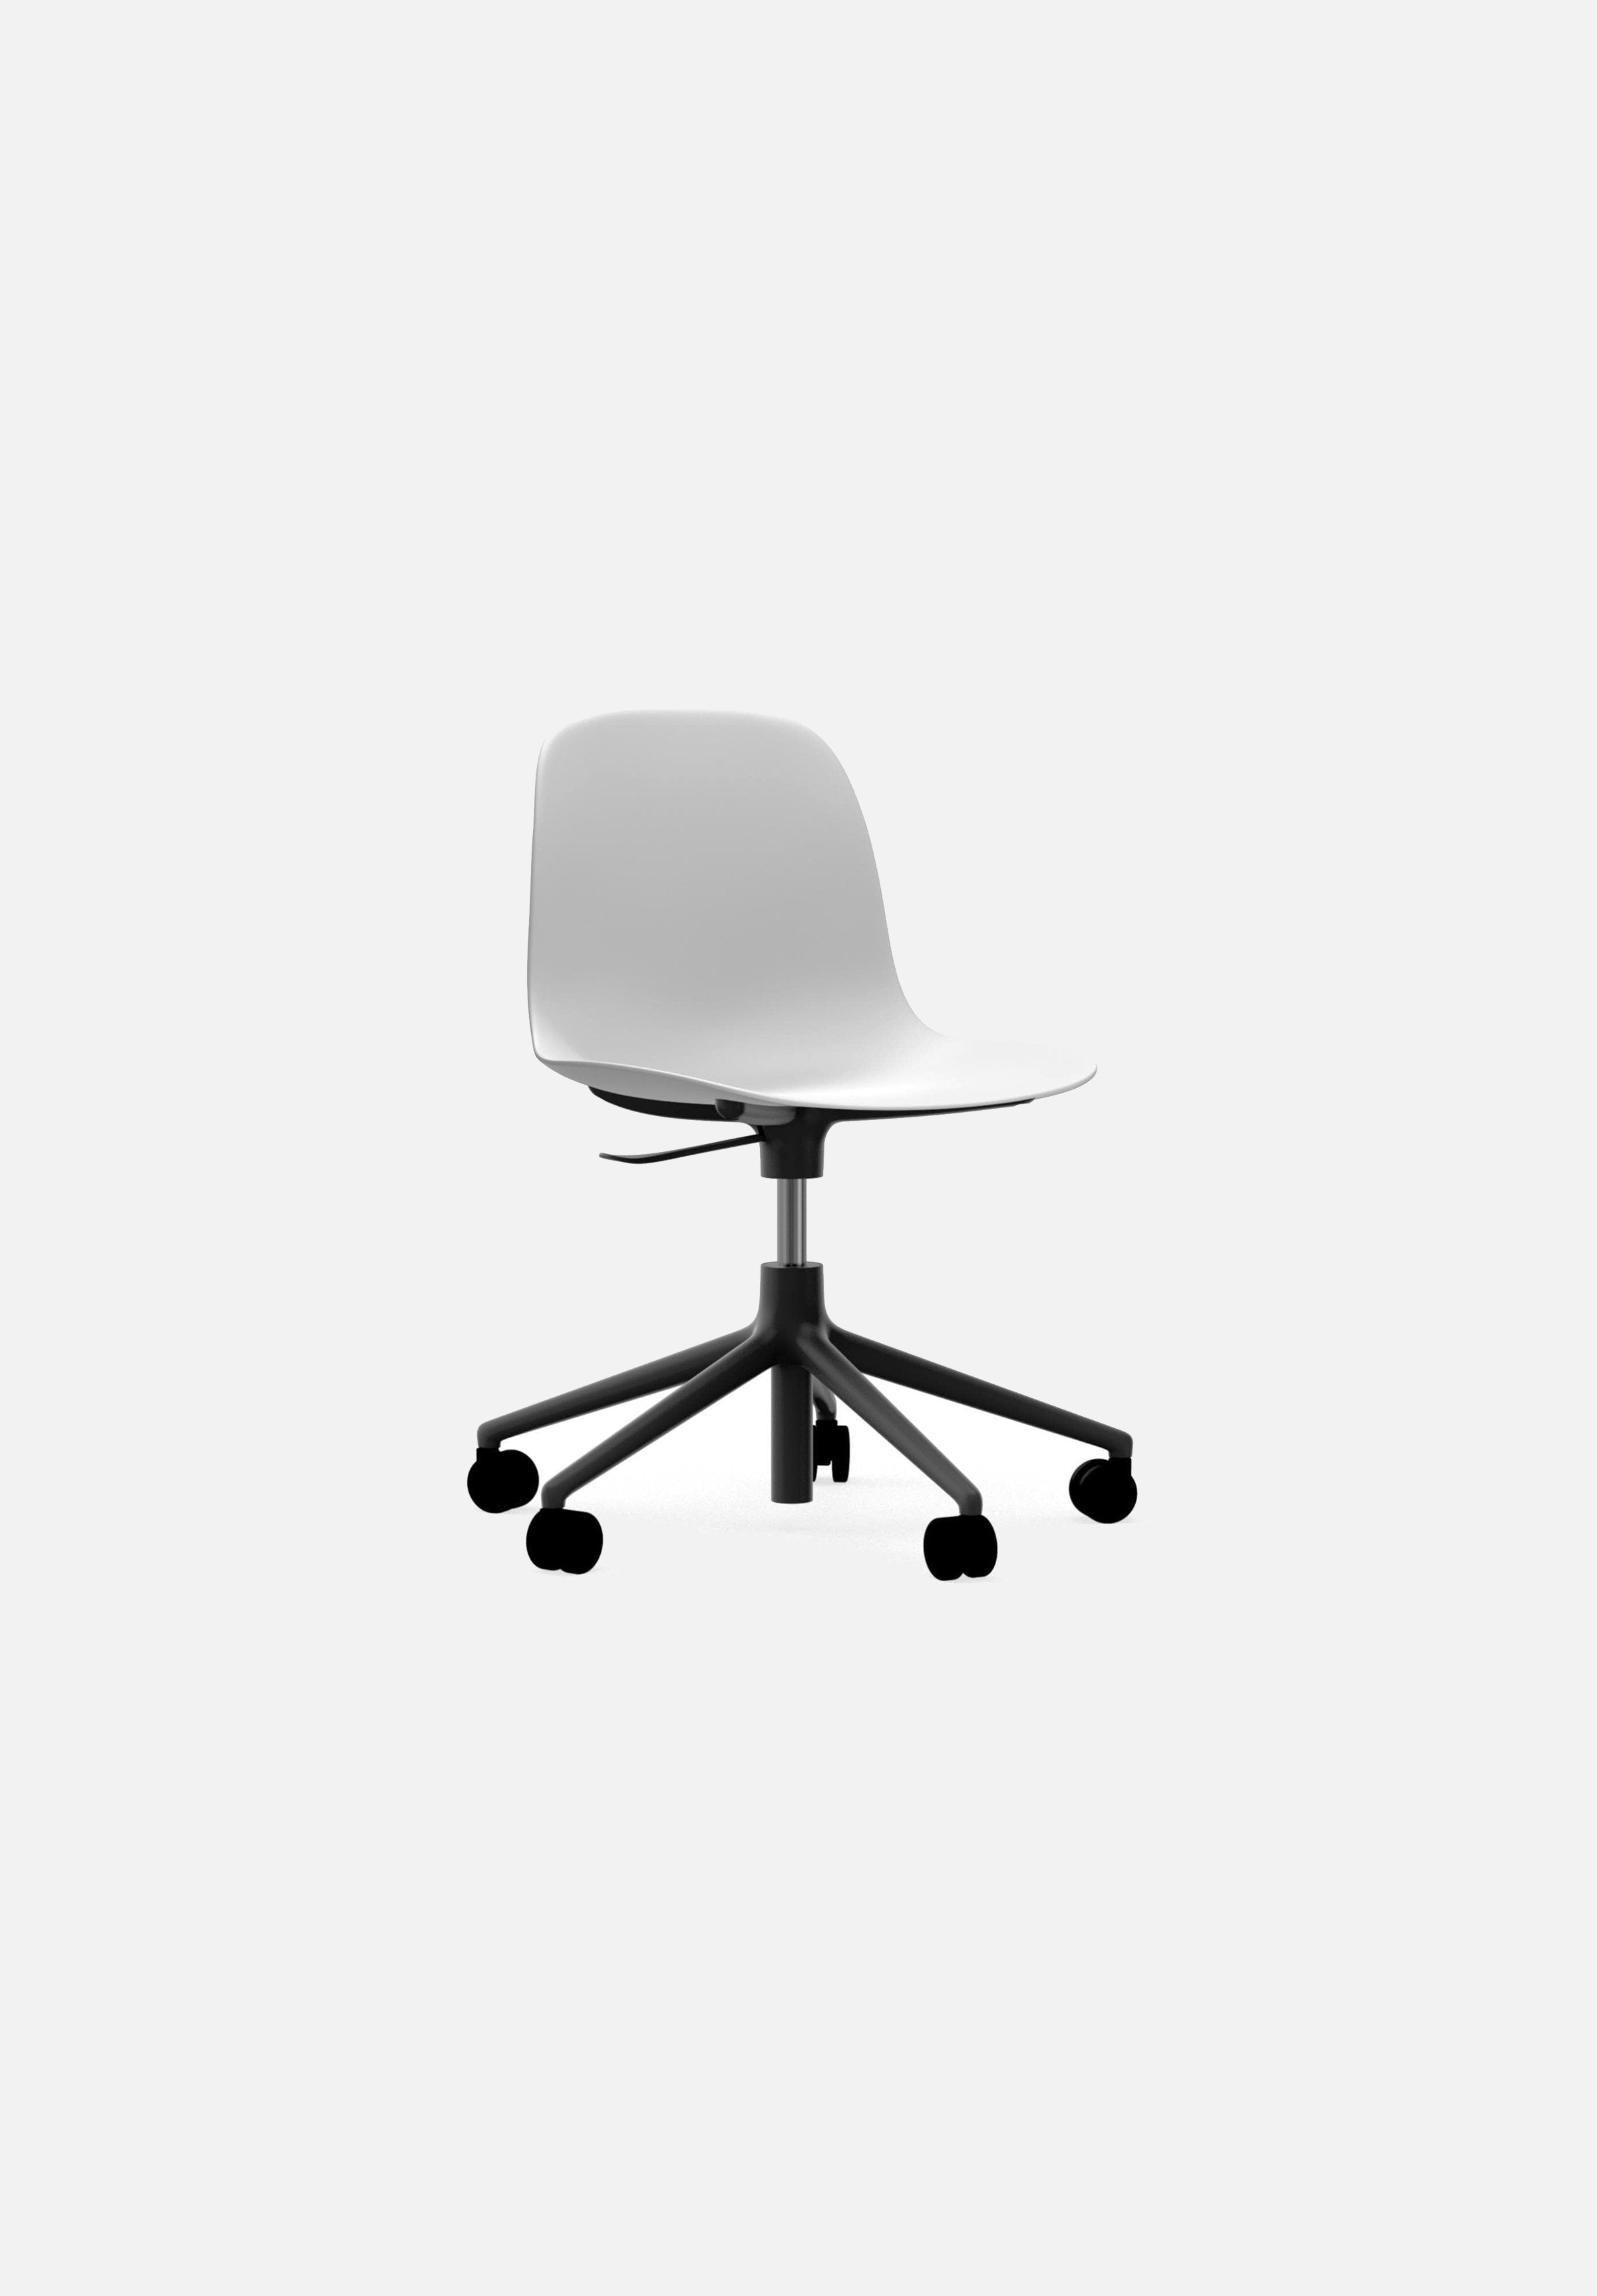 Form Chair — Swivel Gaslift-Simon Legald-Normann Copenhagen-White-Black Aluminum-Average-canada-design-store-danish-denmark-furniture-interior